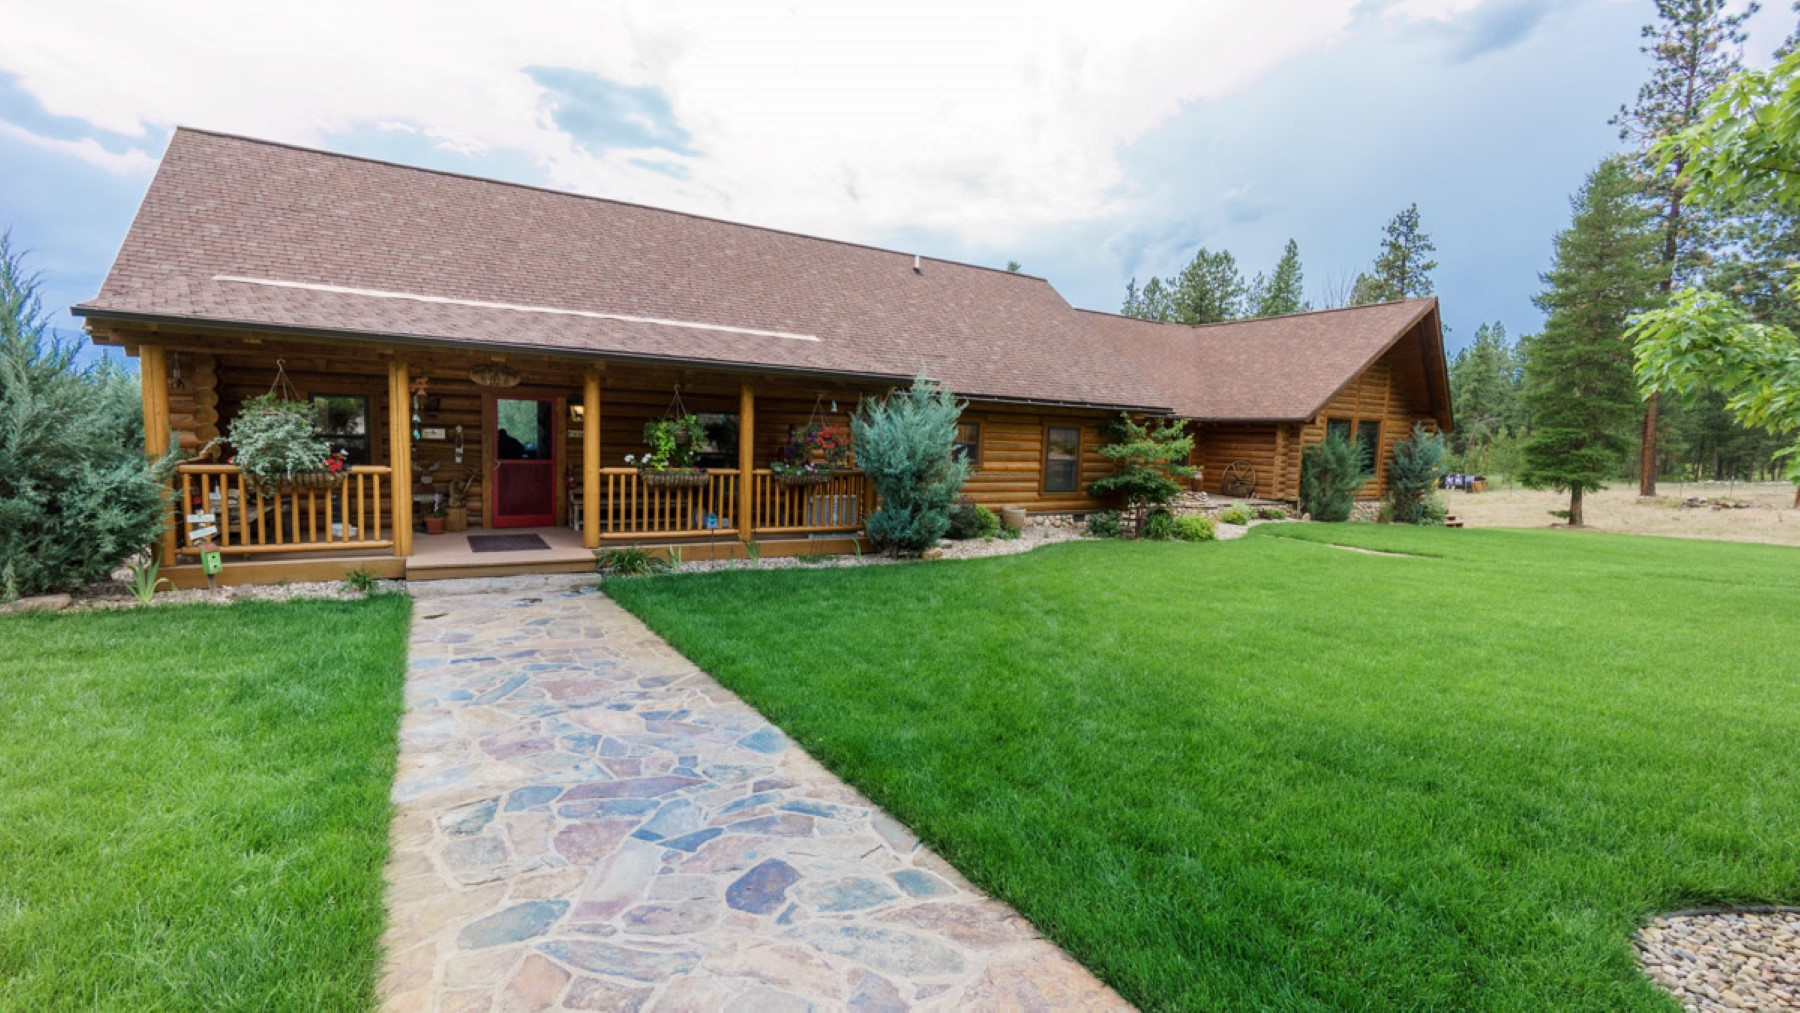 Single Family Home for Sale at 20925 Spotted Fawn Rd , Huson, MT 59846 20925 Spotted Fawn Rd Huson, Montana 59846 United States